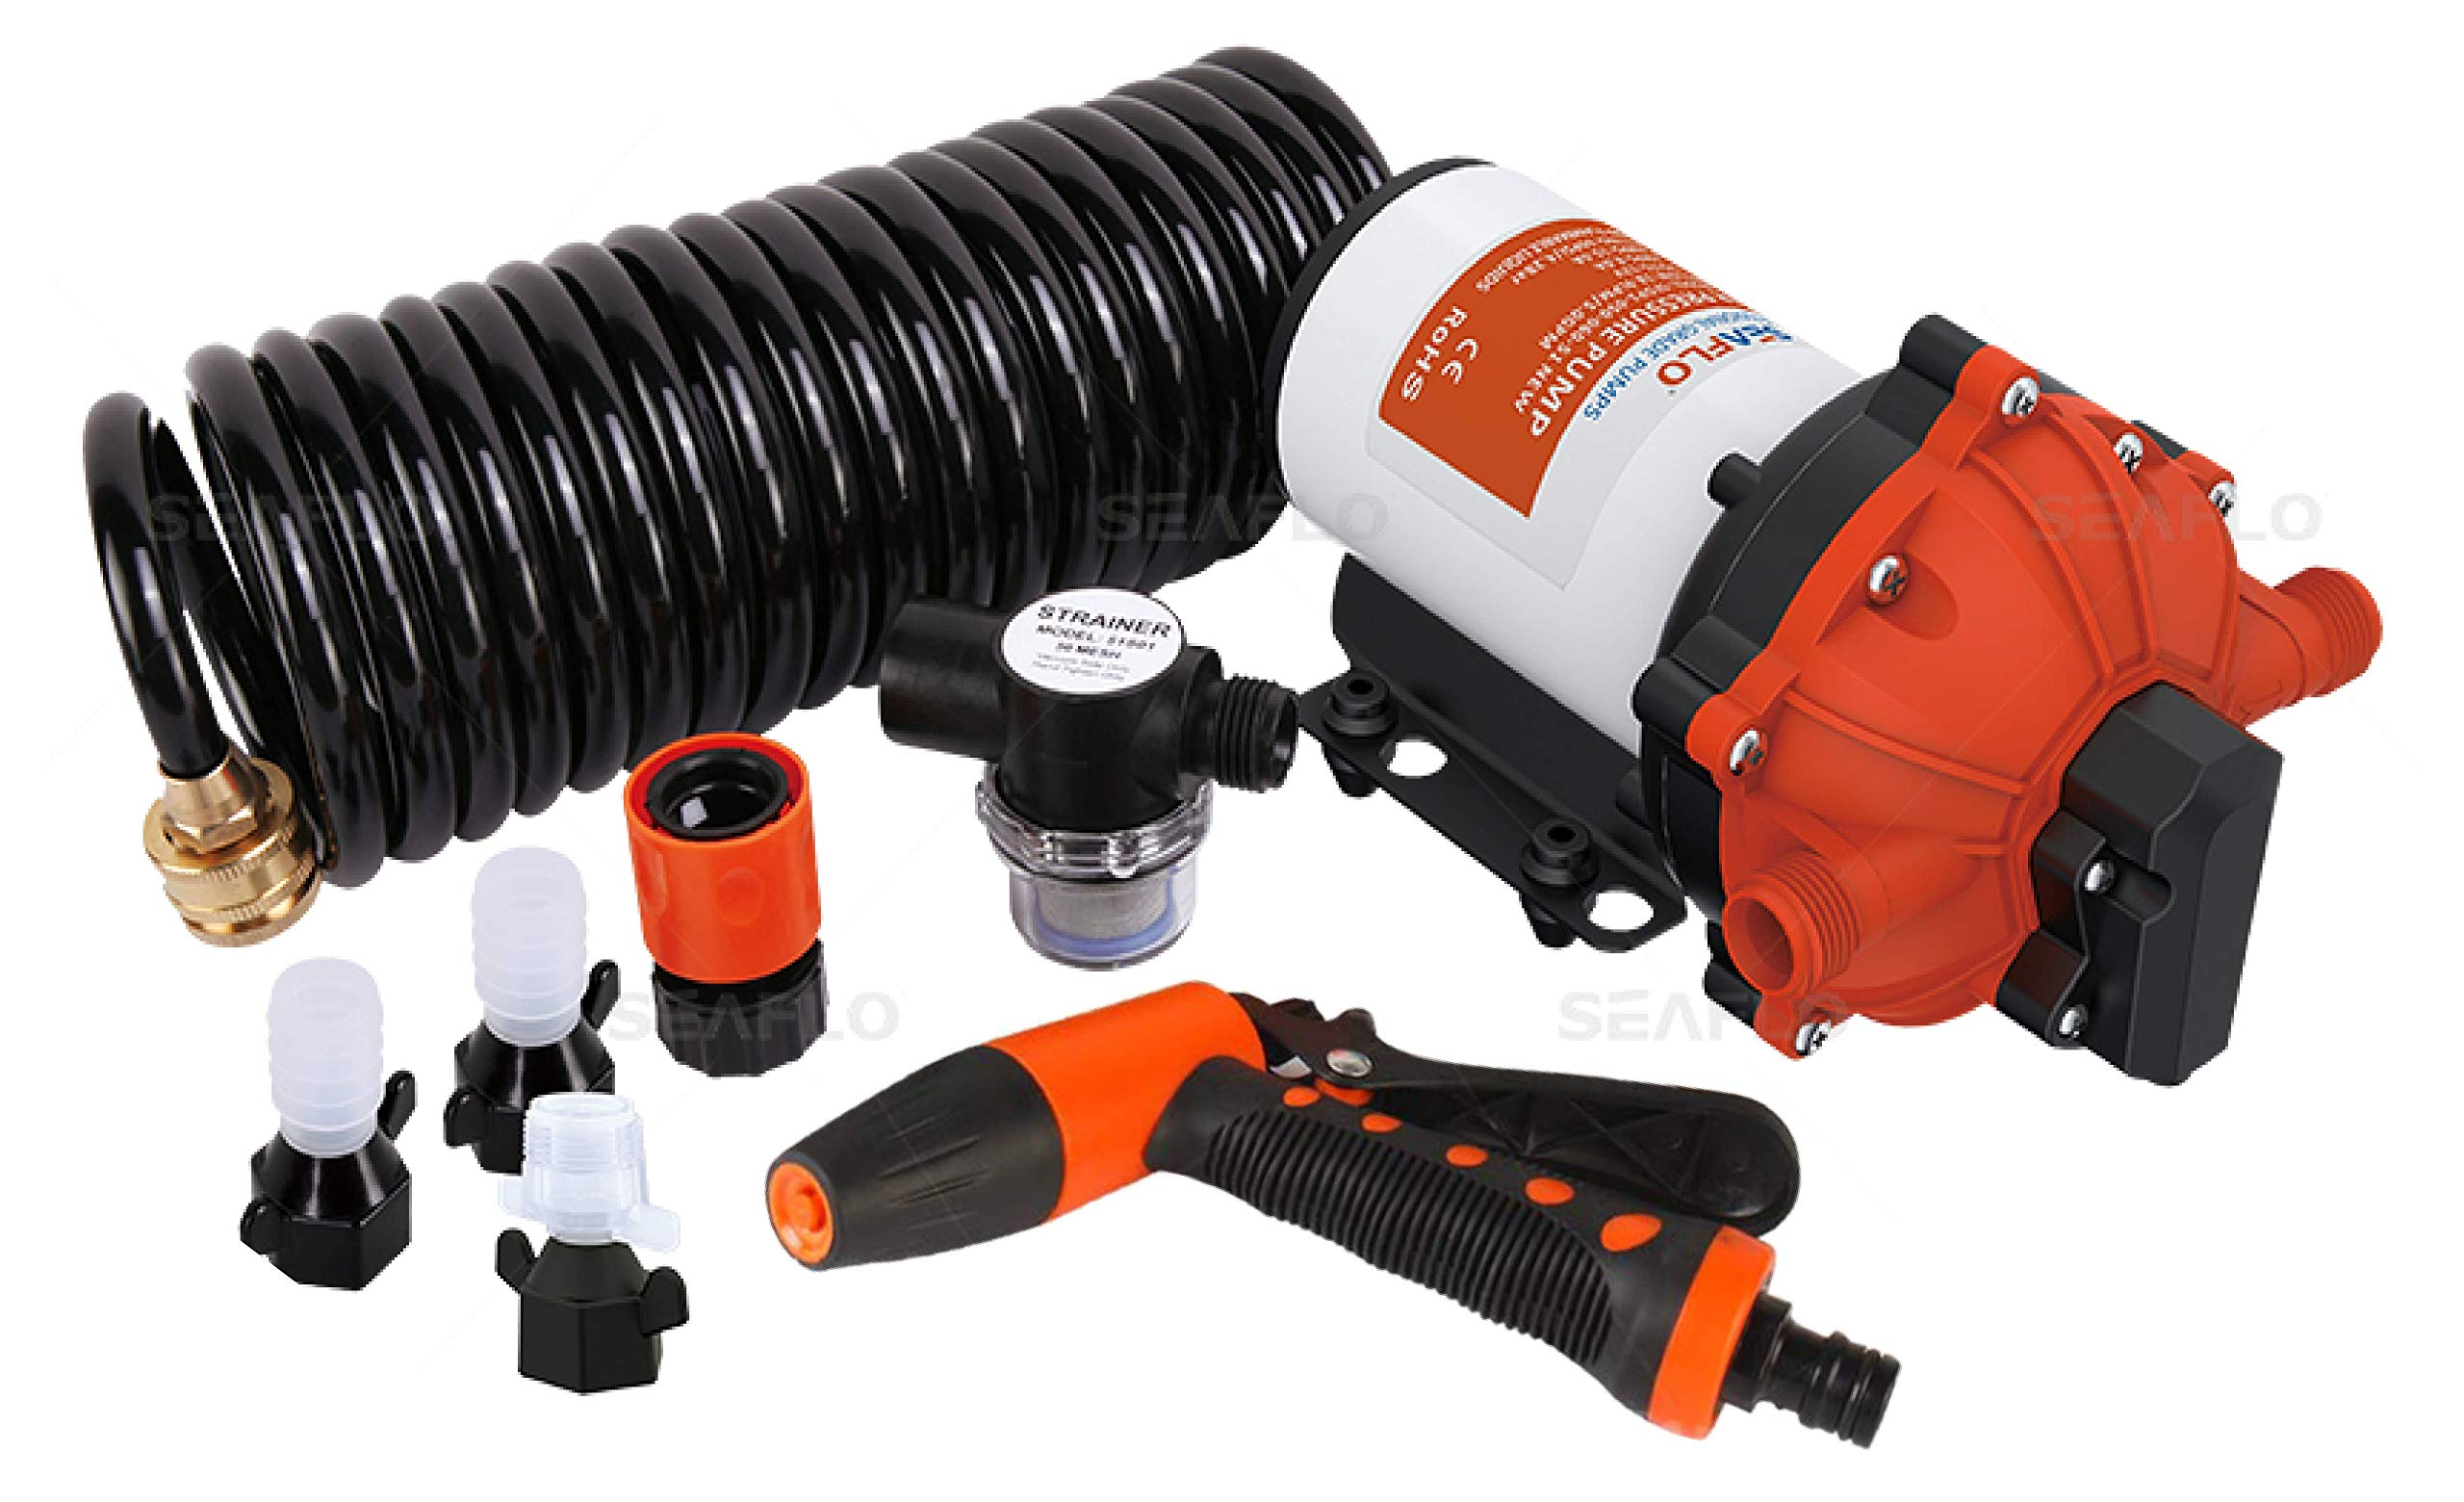 SEAFLO 55-Series Washdown Pump Kit - 12V DC, 5.2 GPM, 70 PSI by SEAFLO